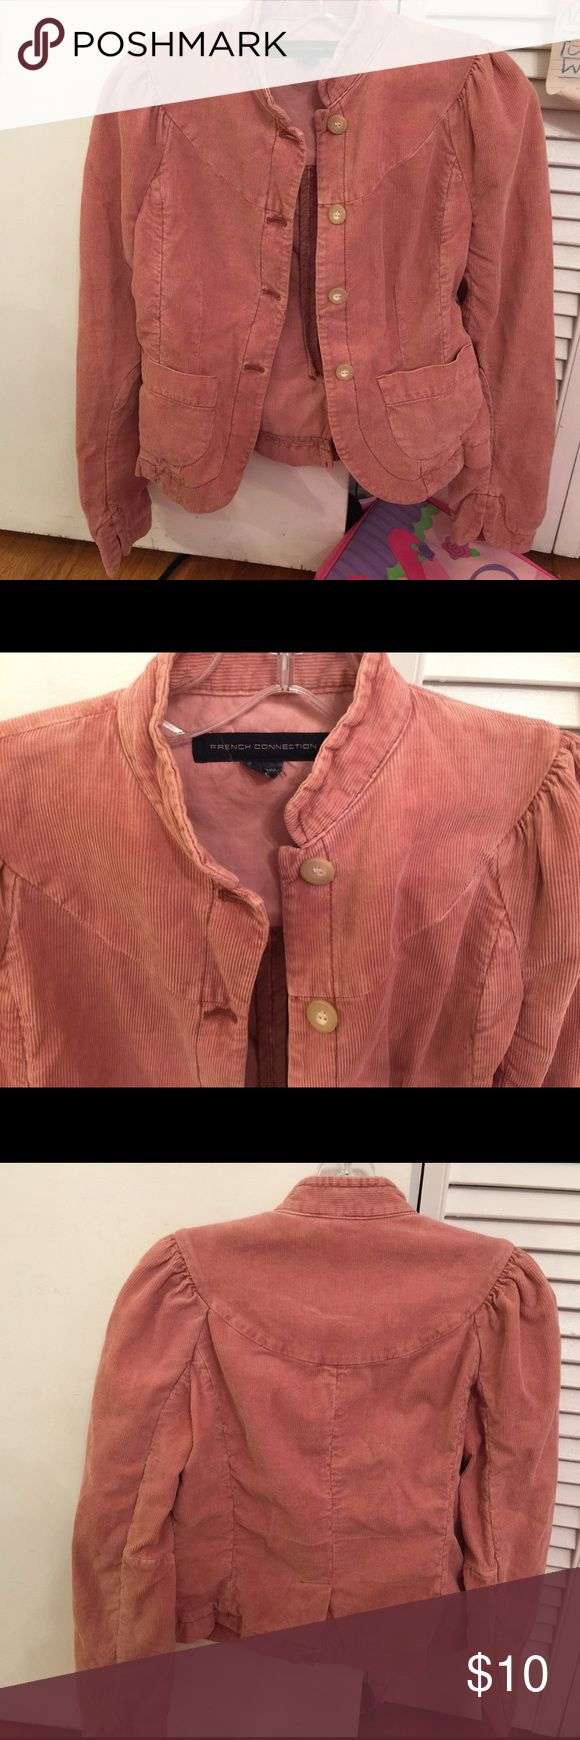 Size 4 EUC French connection rose corduroy jacket Excellent condition French connection jacket, size 4 in a dusty rose color French Connection Jackets & Coats